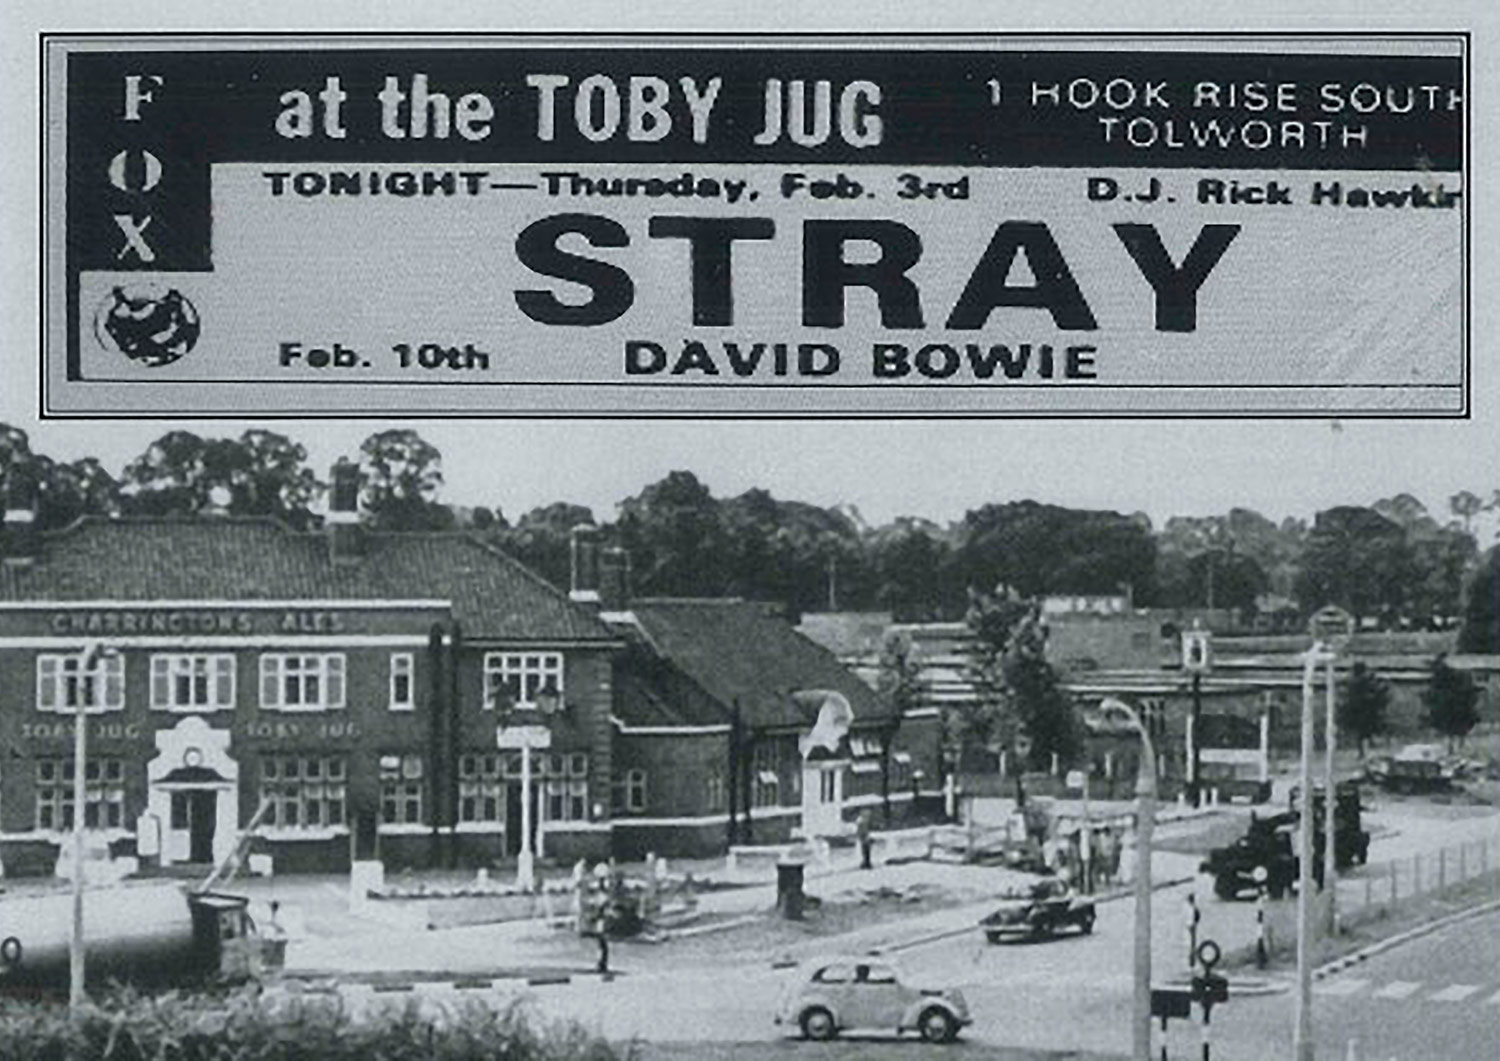 David Bowie at the Toby Jug.